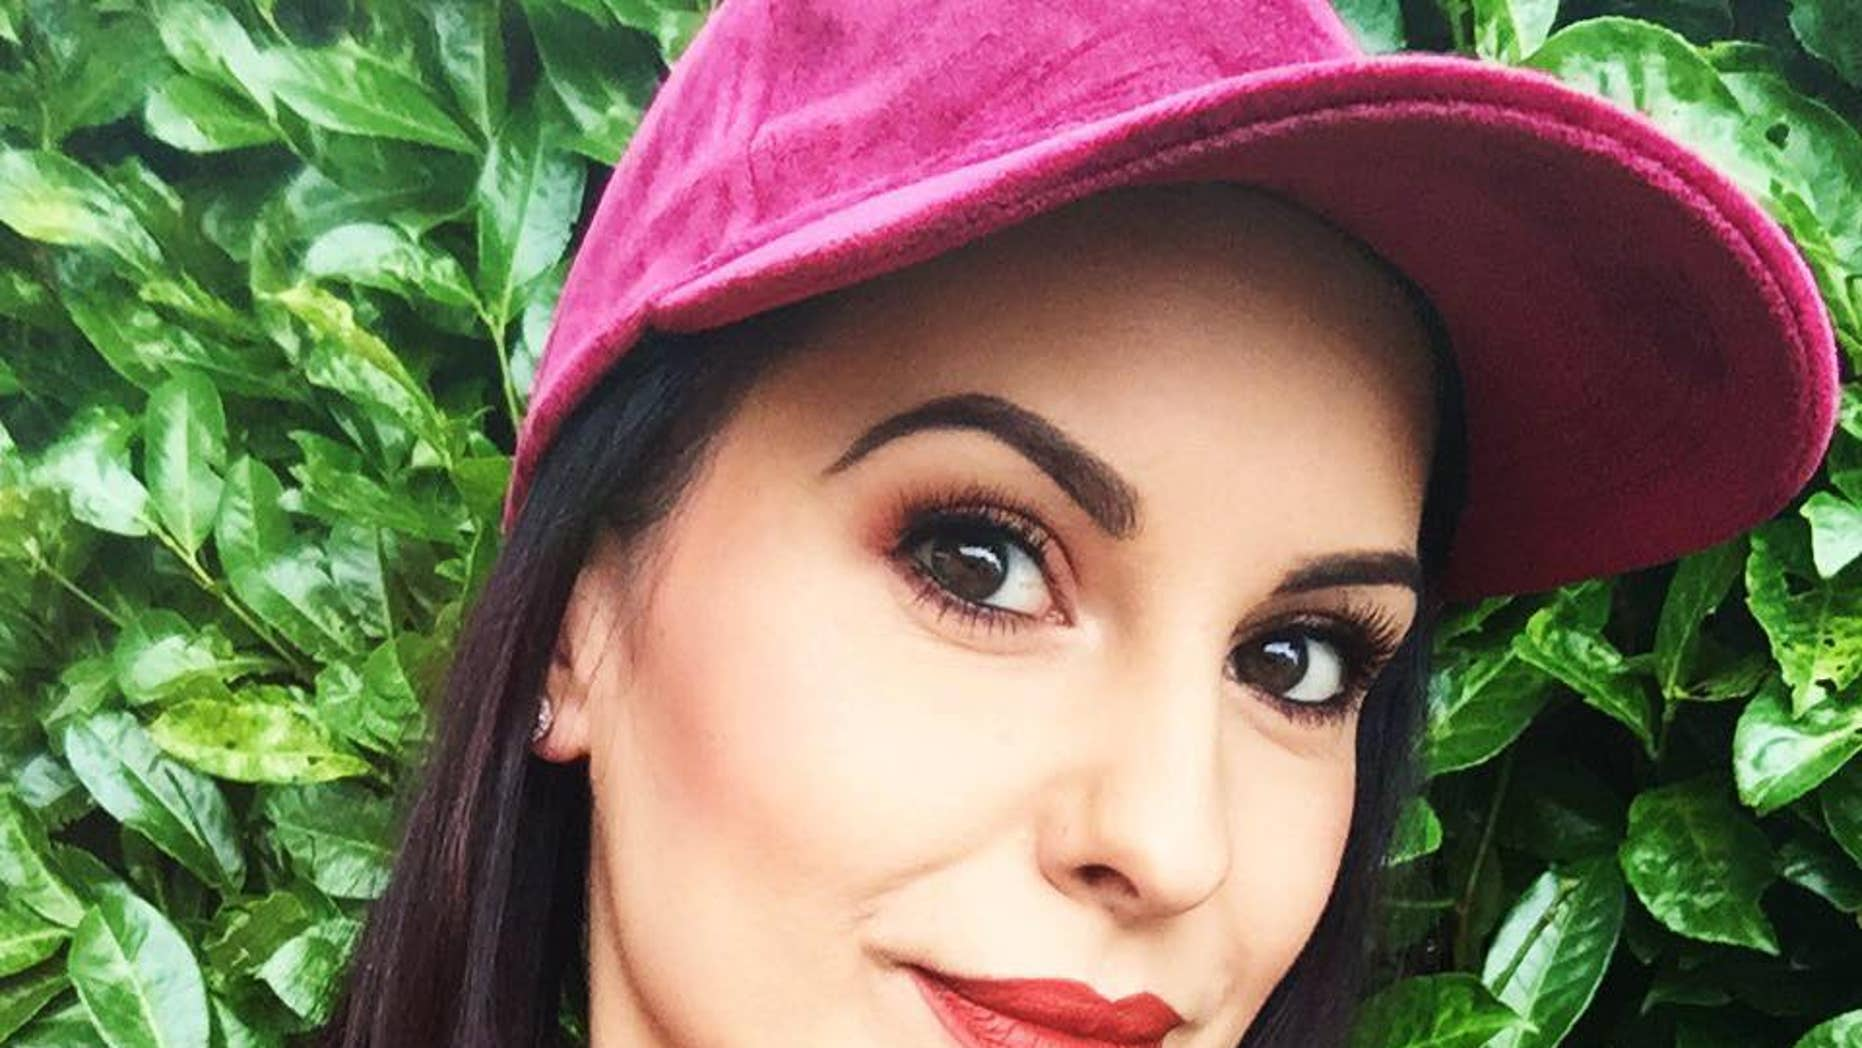 """Monika Nos, a 29-year old beautician in Britain described by her loved ones as """"positive, open and happy,"""" has reportedly been suffering from depression that led to her death in October. (Facebook"""